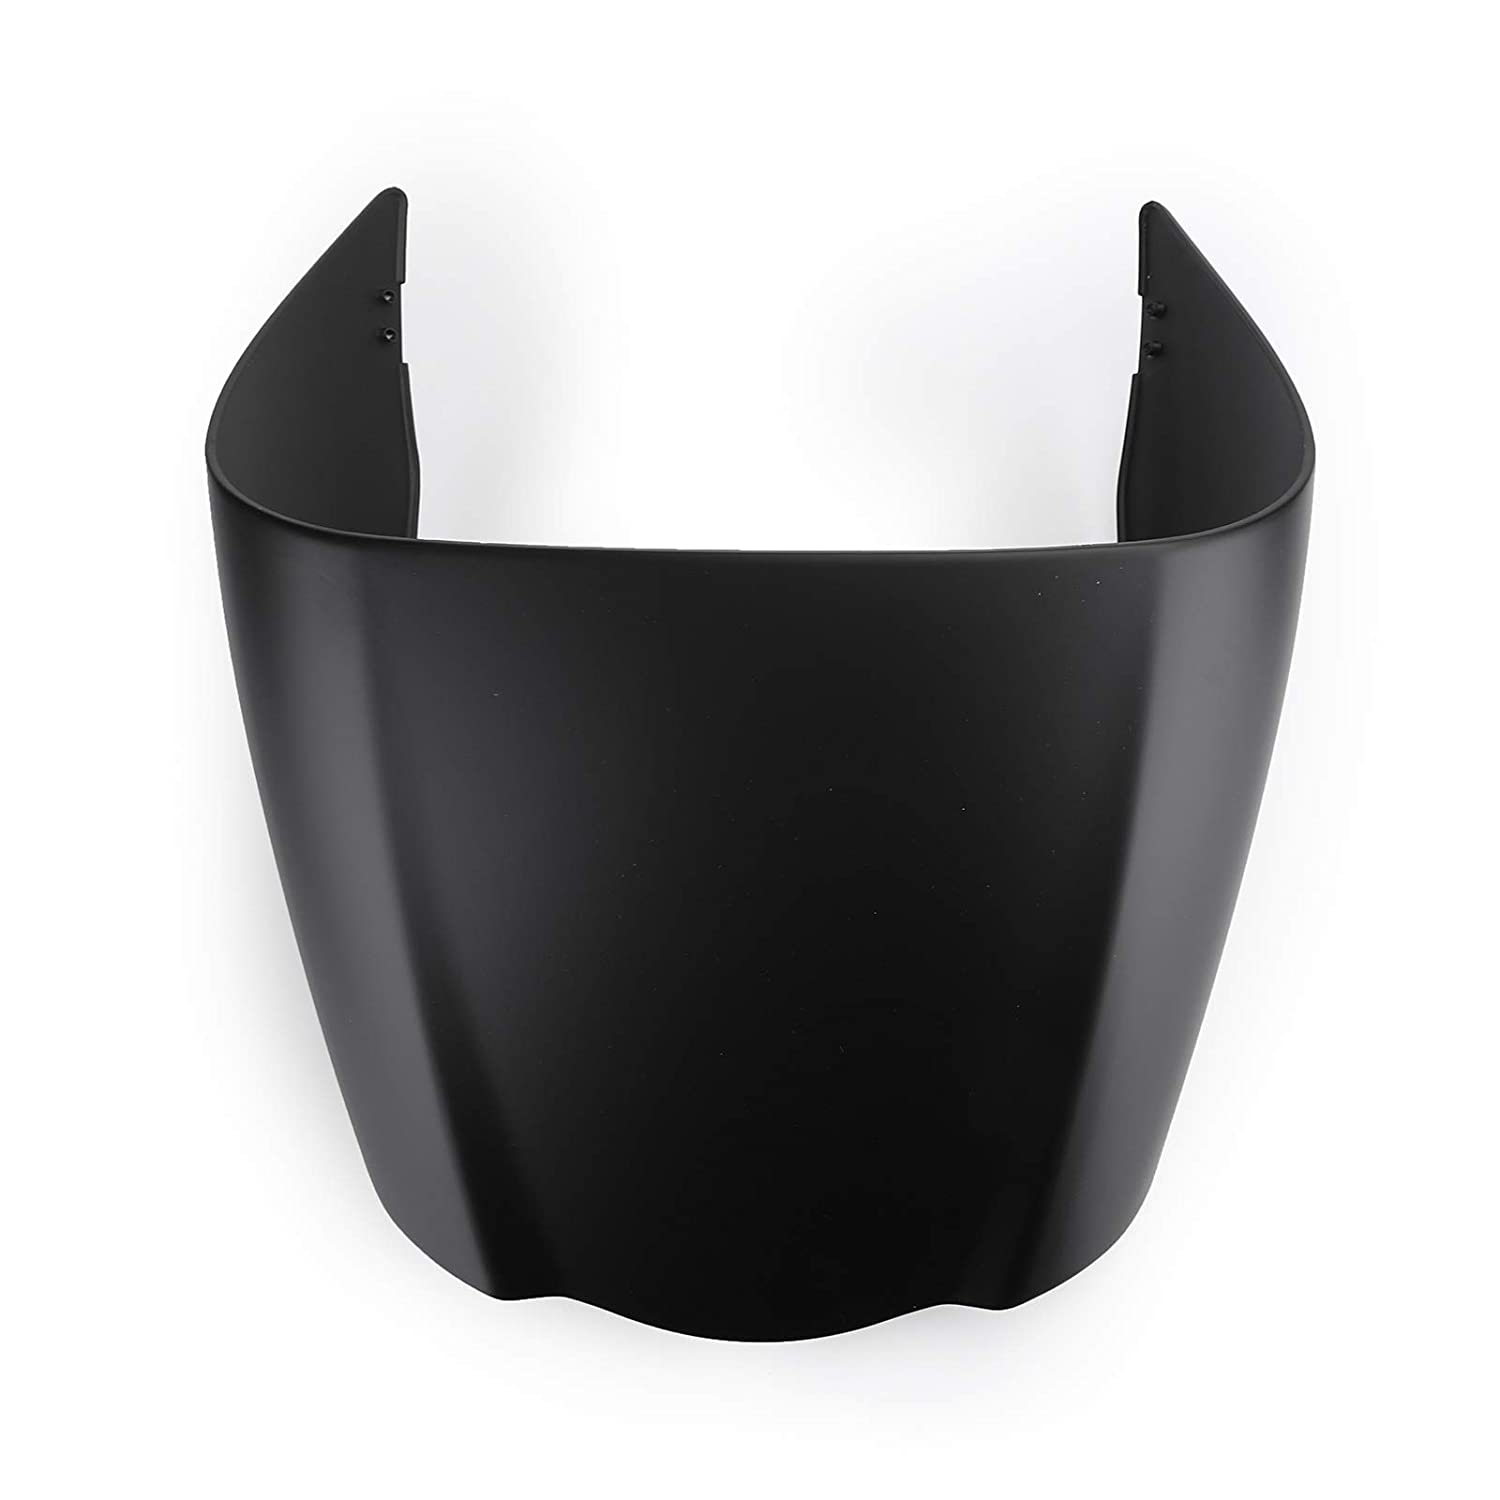 Topteng Rear Seat Cowl,Motorcycle Rear Passenger Pillion Solo Seat Cowl Hard ABS Pad Motor Fairing Tail Cover for A-PRILIA 2009-2016 RSV4